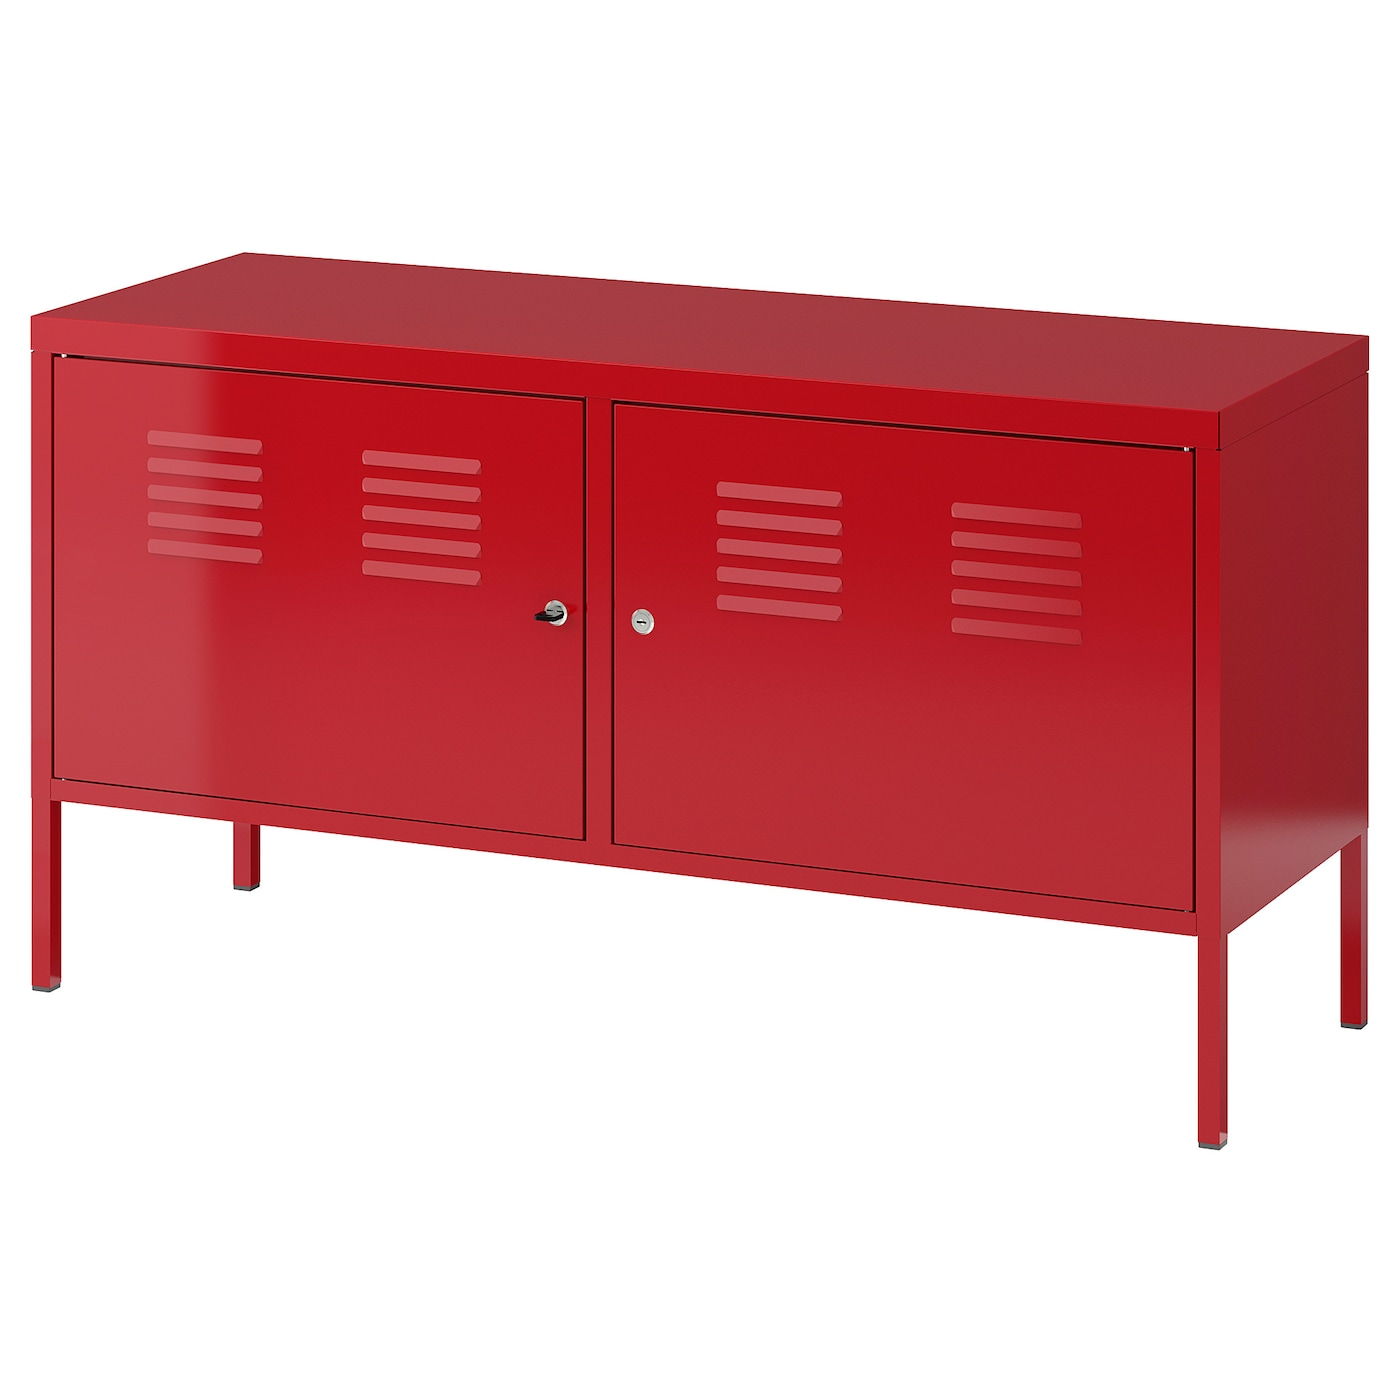 Picture of: Ikea Ps Red Cabinet 119×63 Cm Ikea